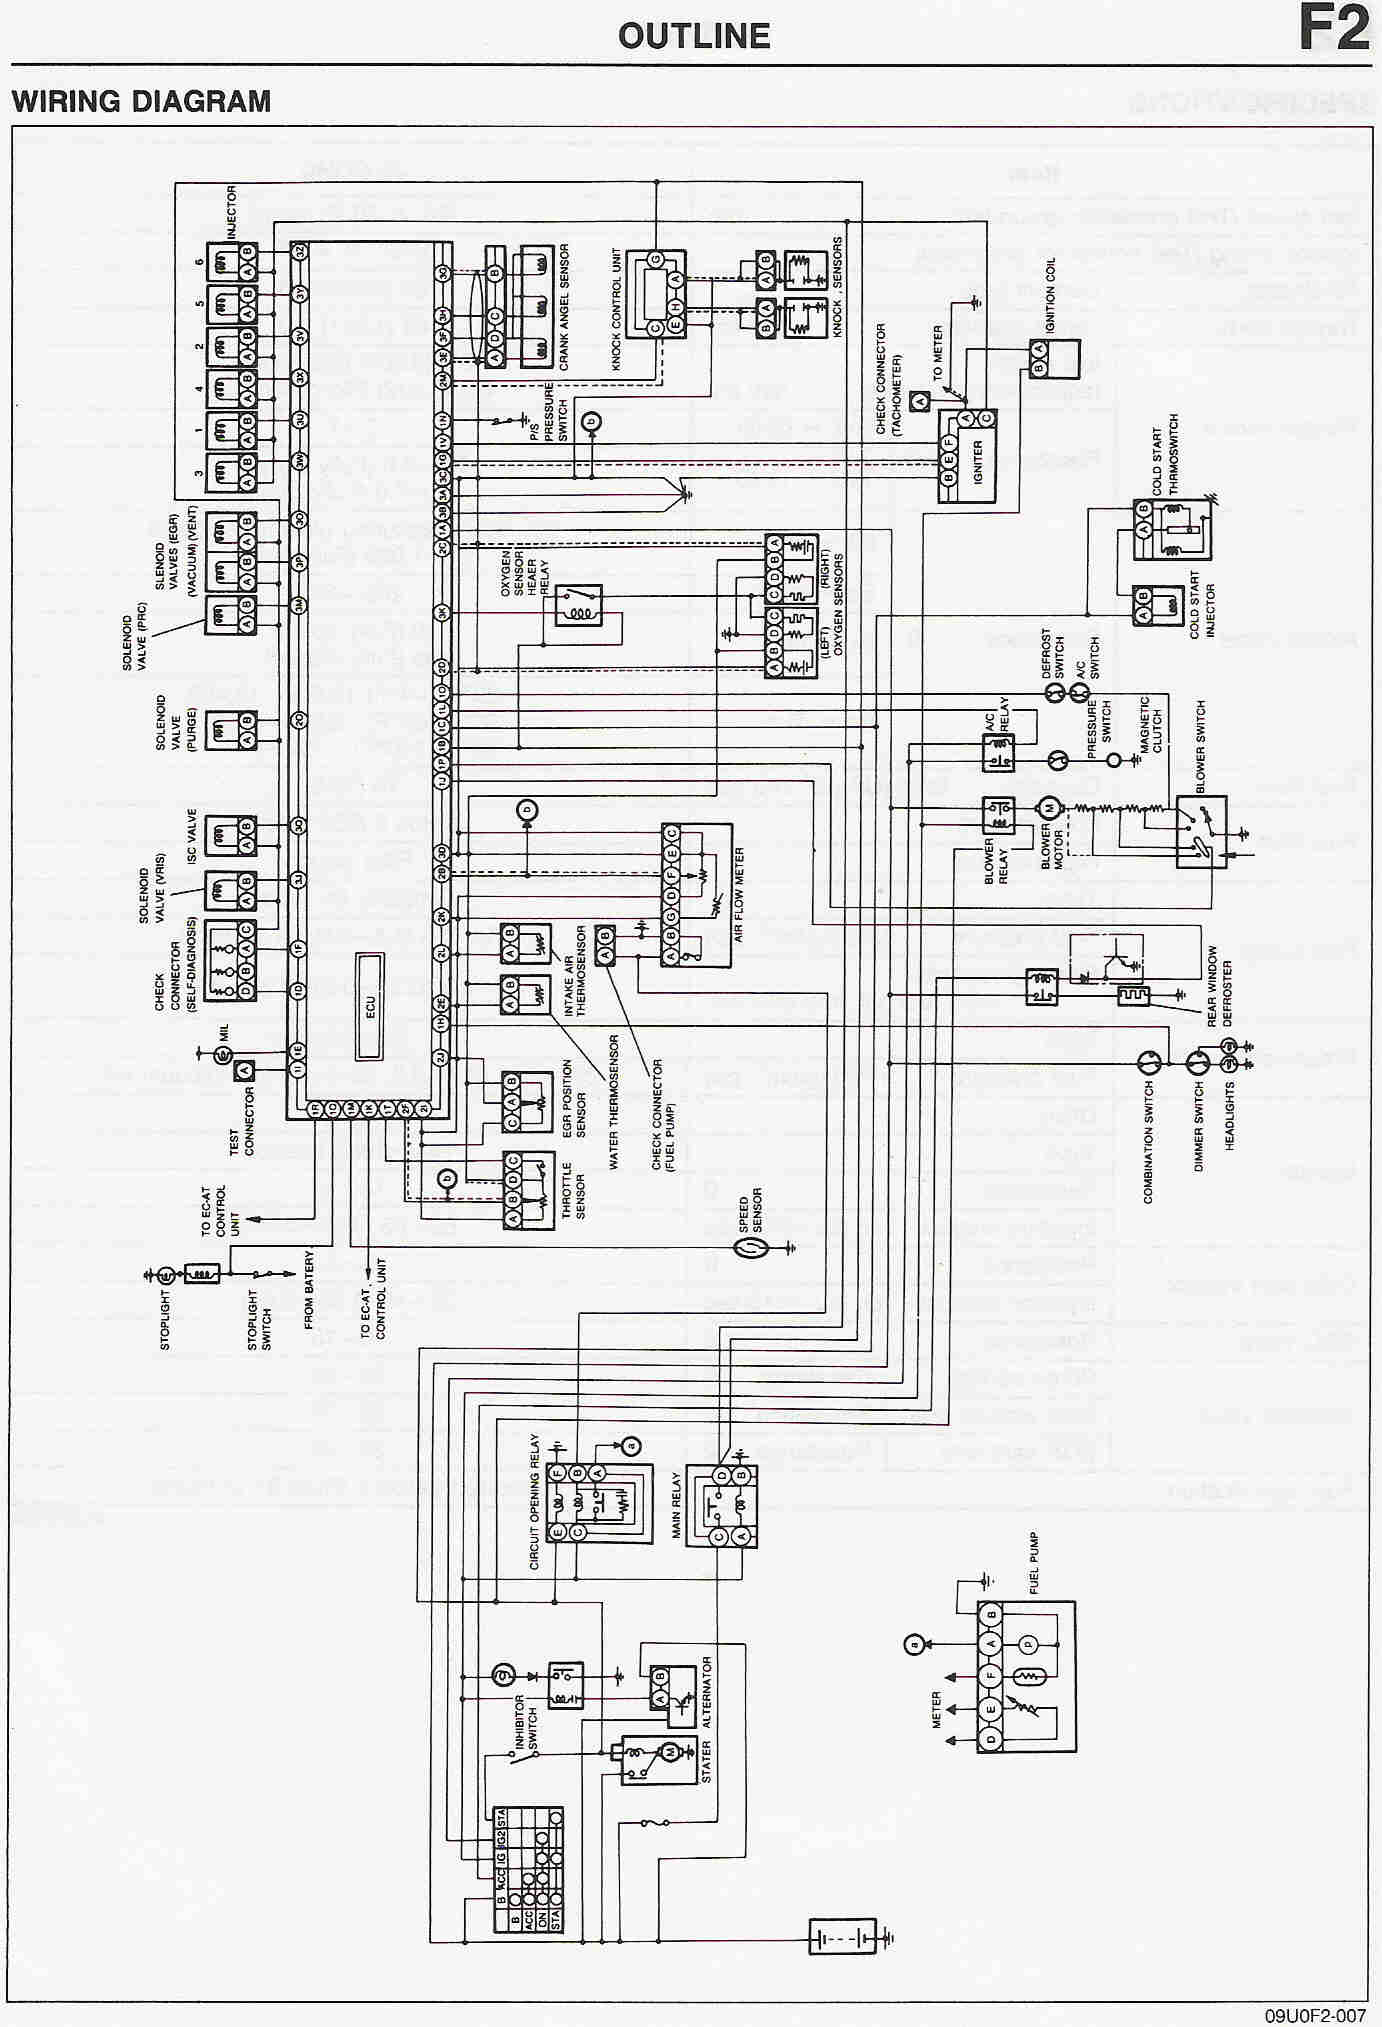 Mazda 929 Wiring Diagram Simple Electrical 1989 B2600i Diagrams Dohc And Sohc Afm Question Forum 626 Radio